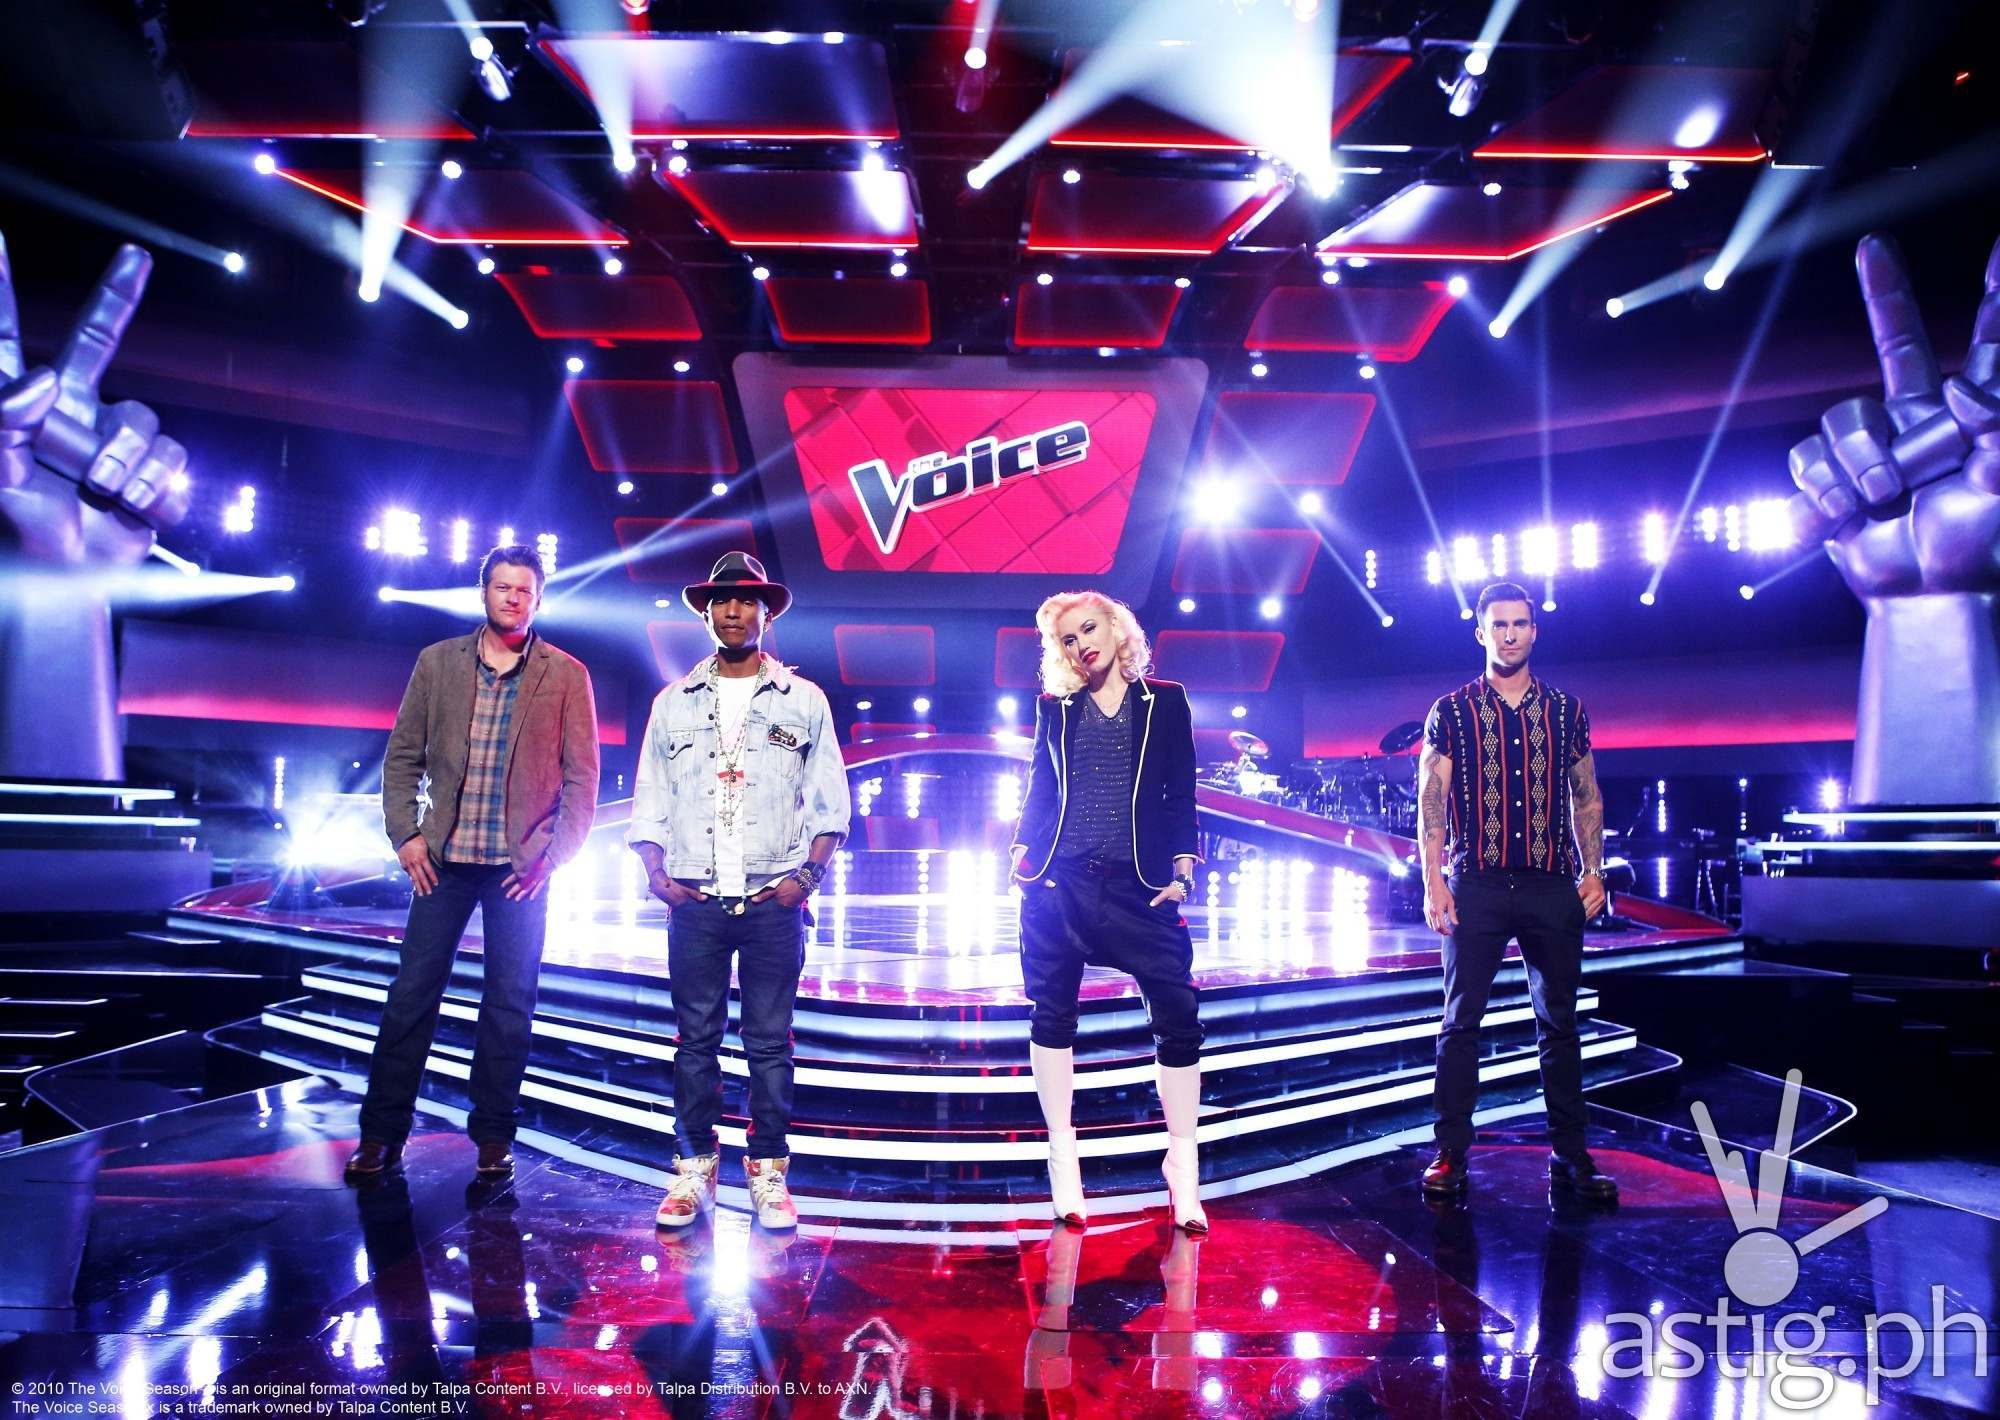 The Voice Season 7 airs September on AXN